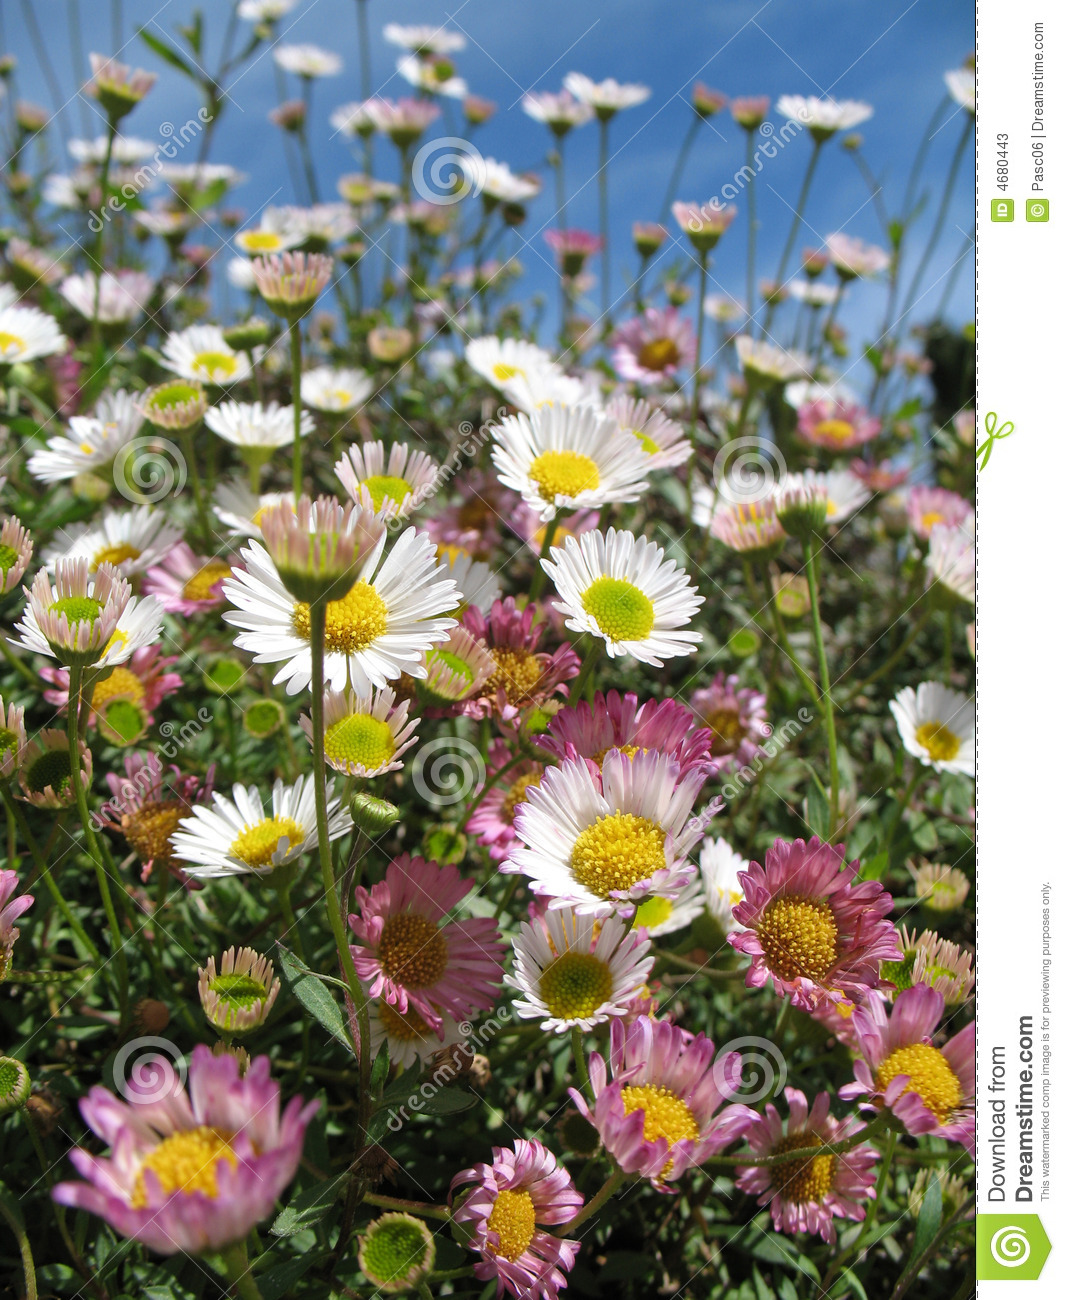 white and pink daisy flowers field looking the sky stock photos, Beautiful flower